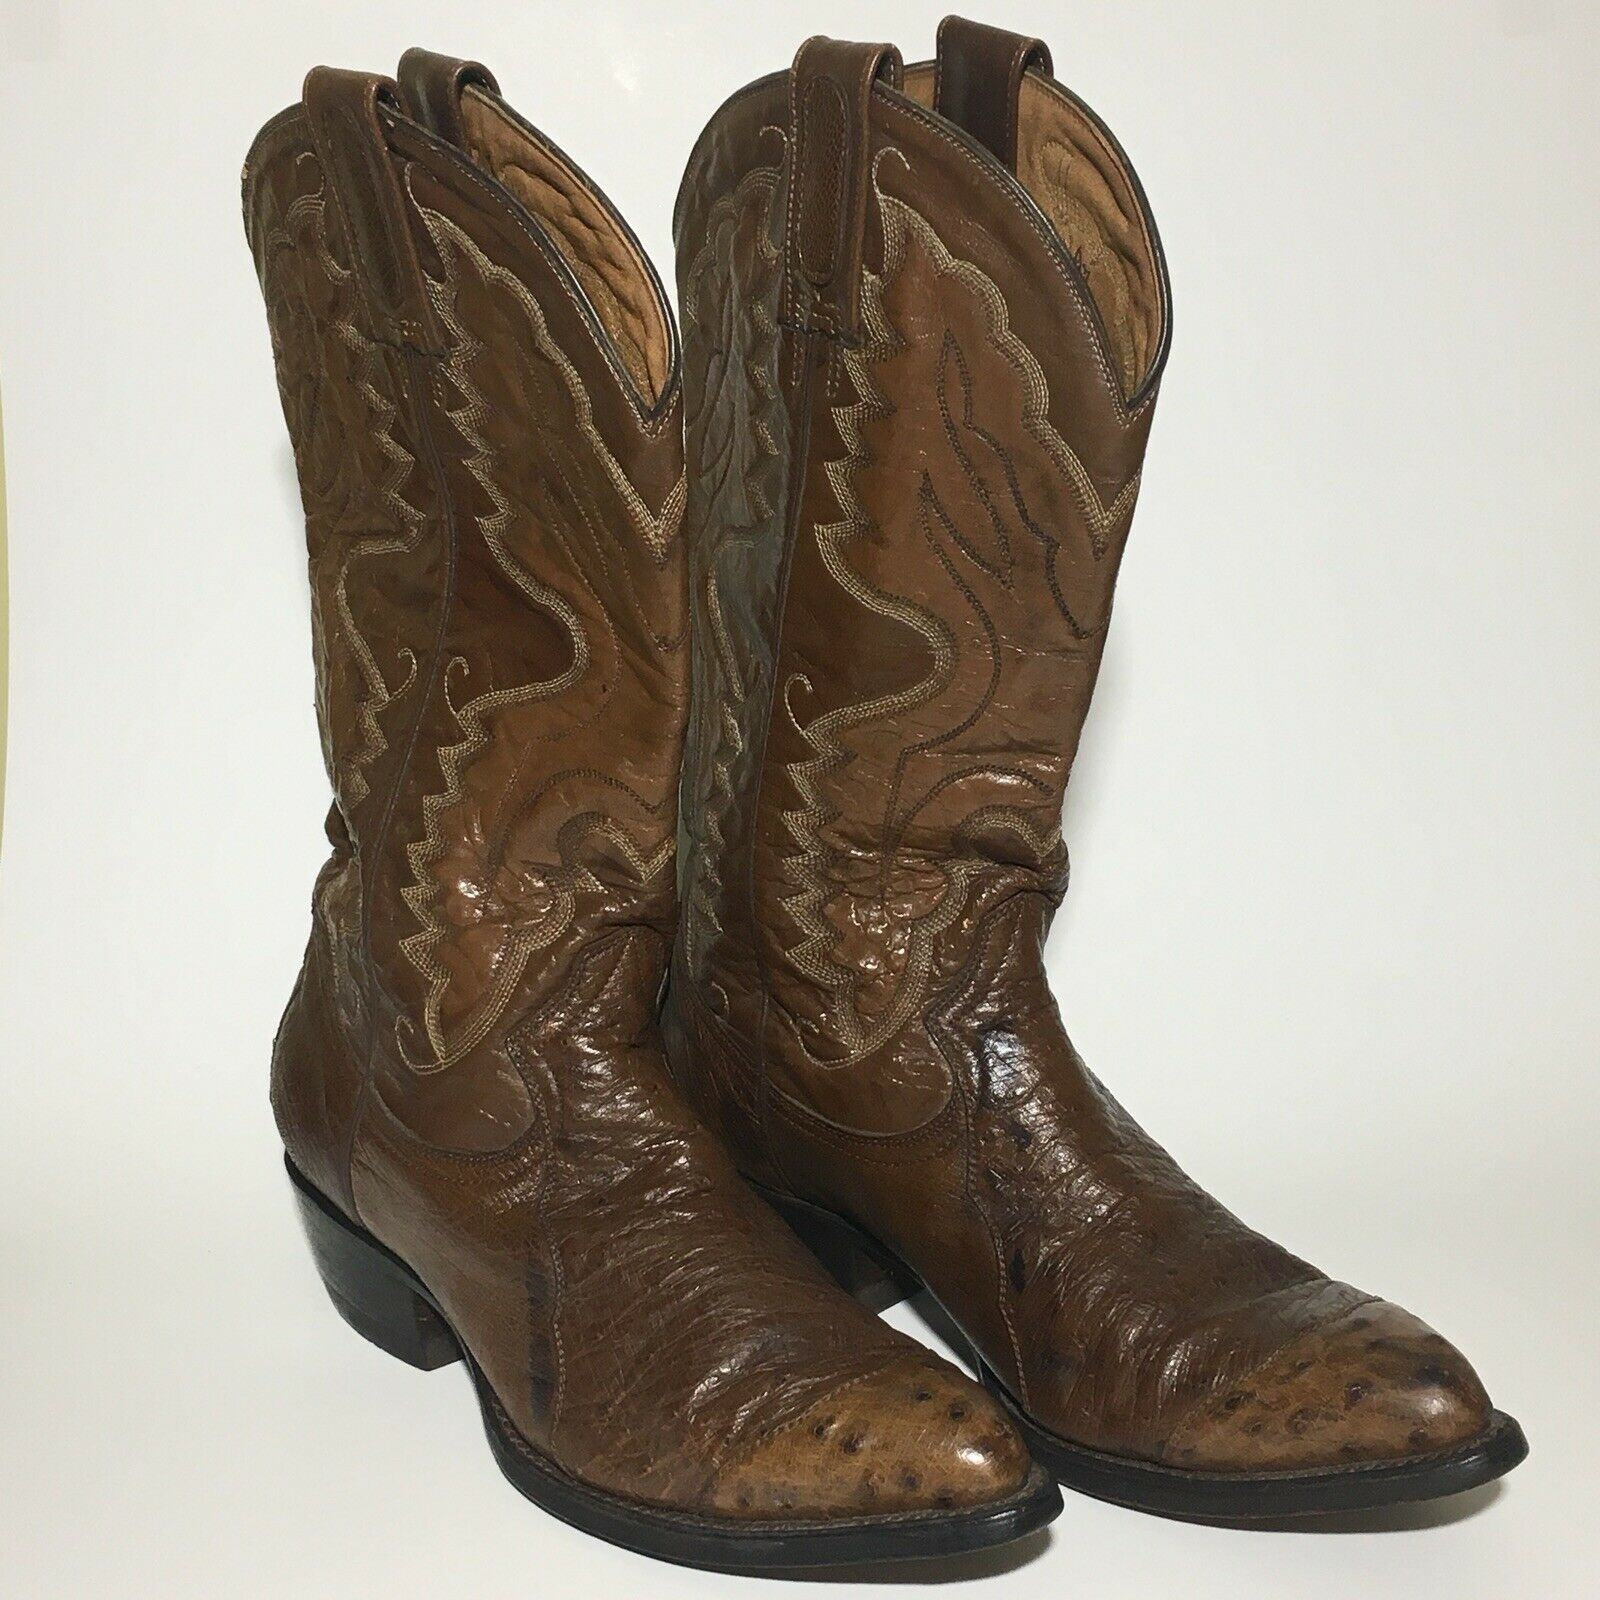 Montana Cowgirl Boots Womens 7.5 Western Leather Ostrich Mexico Dance Festival